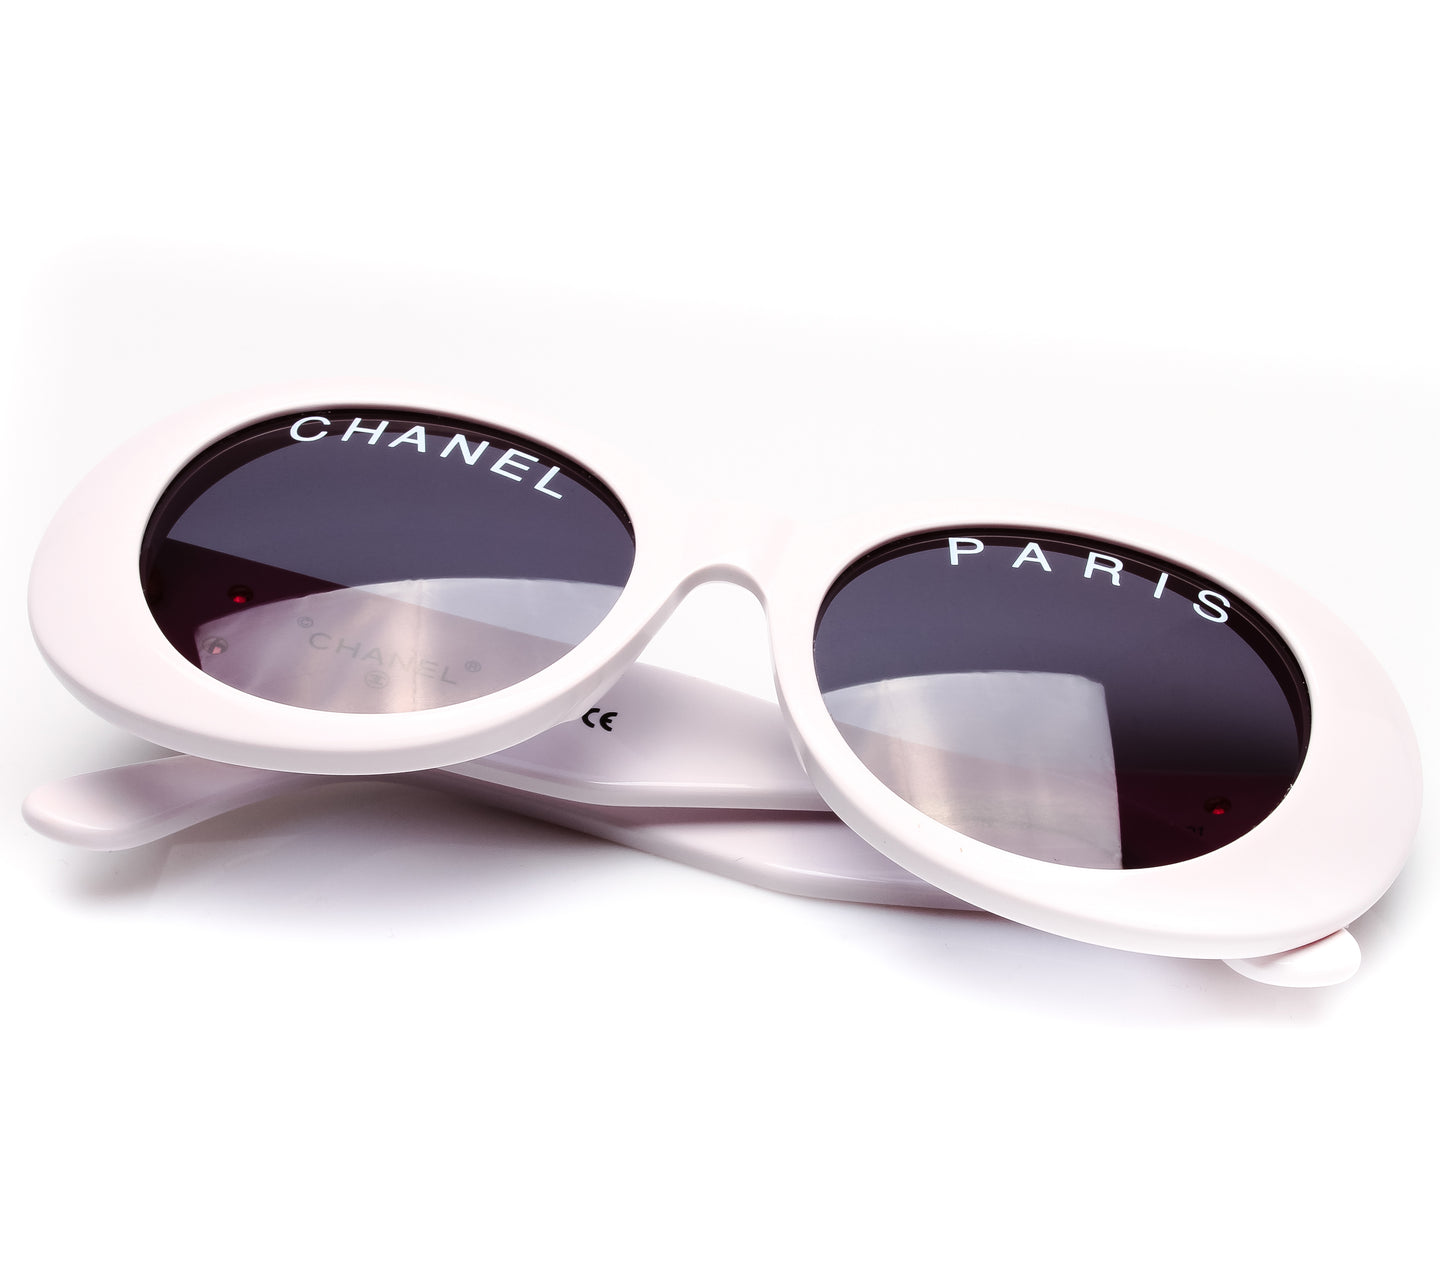 Chanel 01947 10601 Thumbnail, Chanel , glasses frames, eyeglasses online, eyeglass frames, mens glasses, womens glasses, buy glasses online, designer eyeglasses, vintage sunglasses, retro sunglasses, vintage glasses, sunglass, eyeglass, glasses, lens, vintage frames company, vf